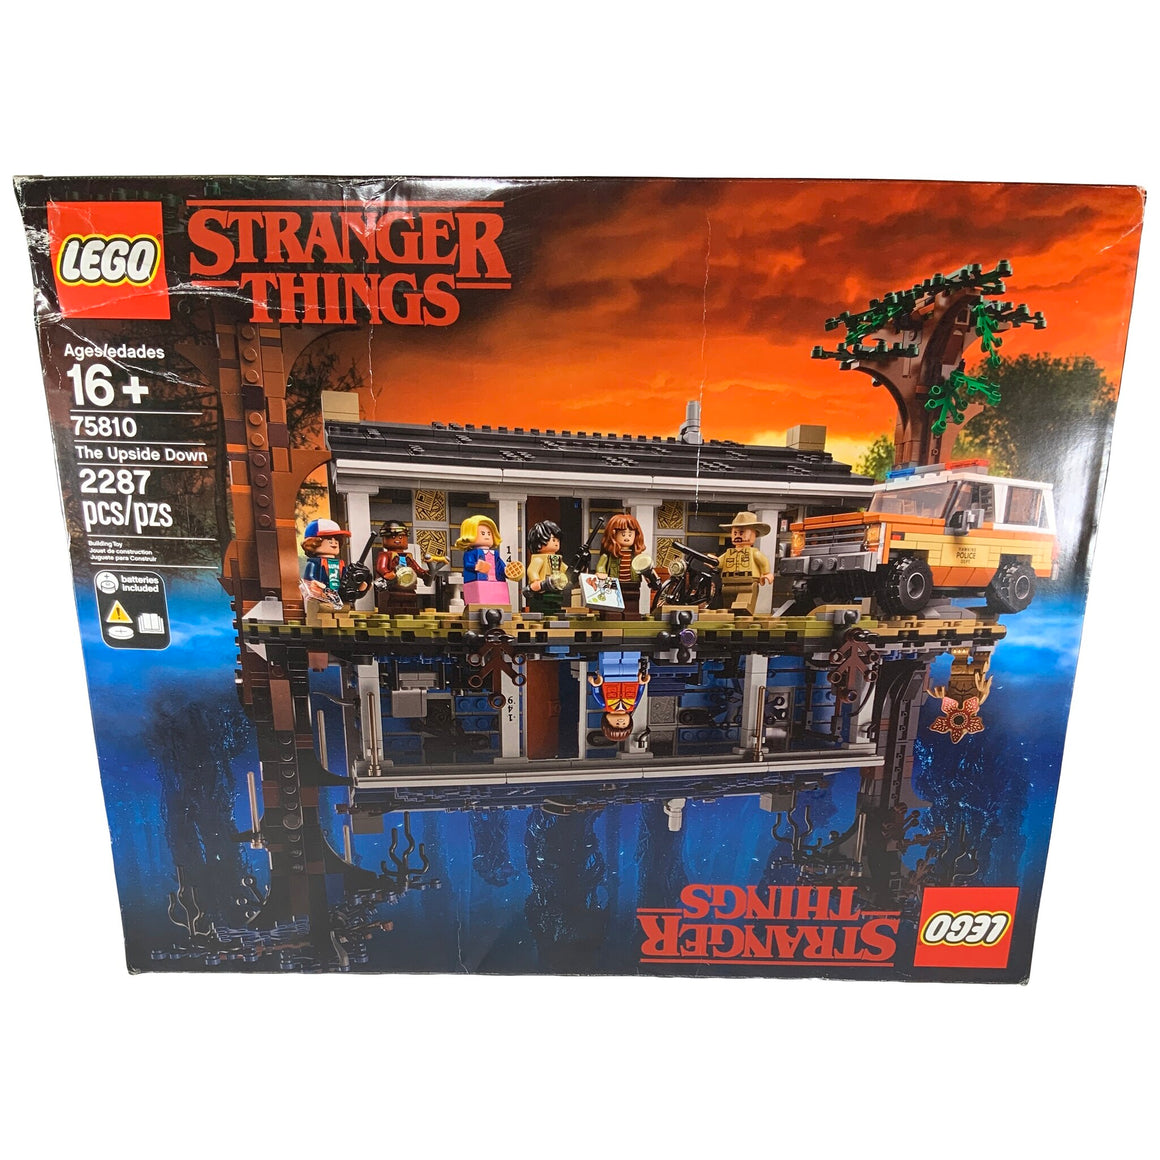 Lego - Stranger Things The Upside Down 2287 Pcs